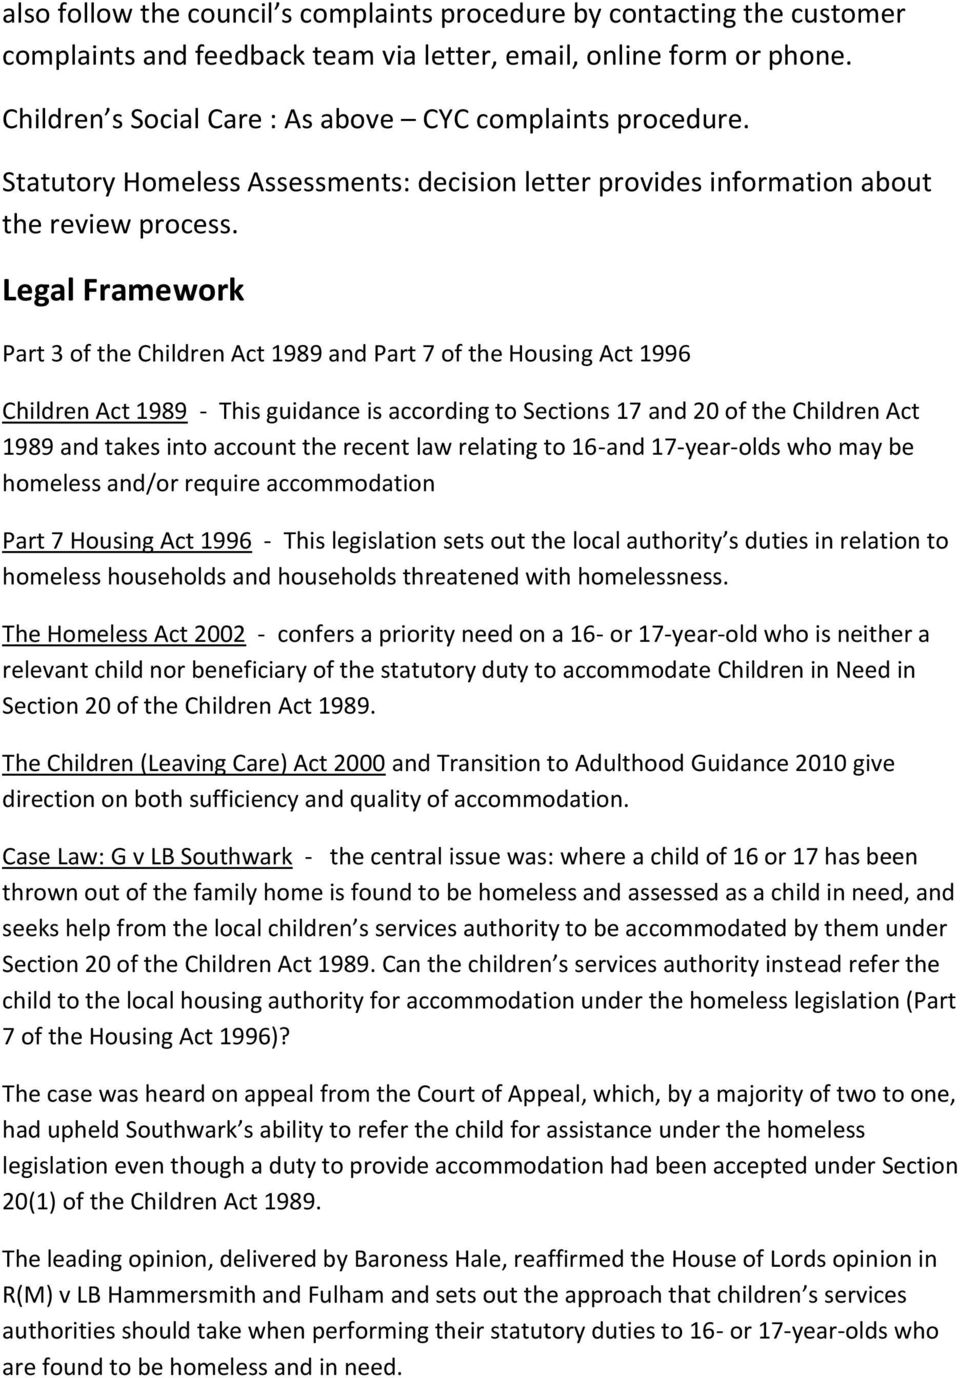 Legal Framework Part 3 of the Children Act 1989 and Part 7 of the Housing Act 1996 Children Act 1989 - This guidance is according to Sections 17 and 20 of the Children Act 1989 and takes into account